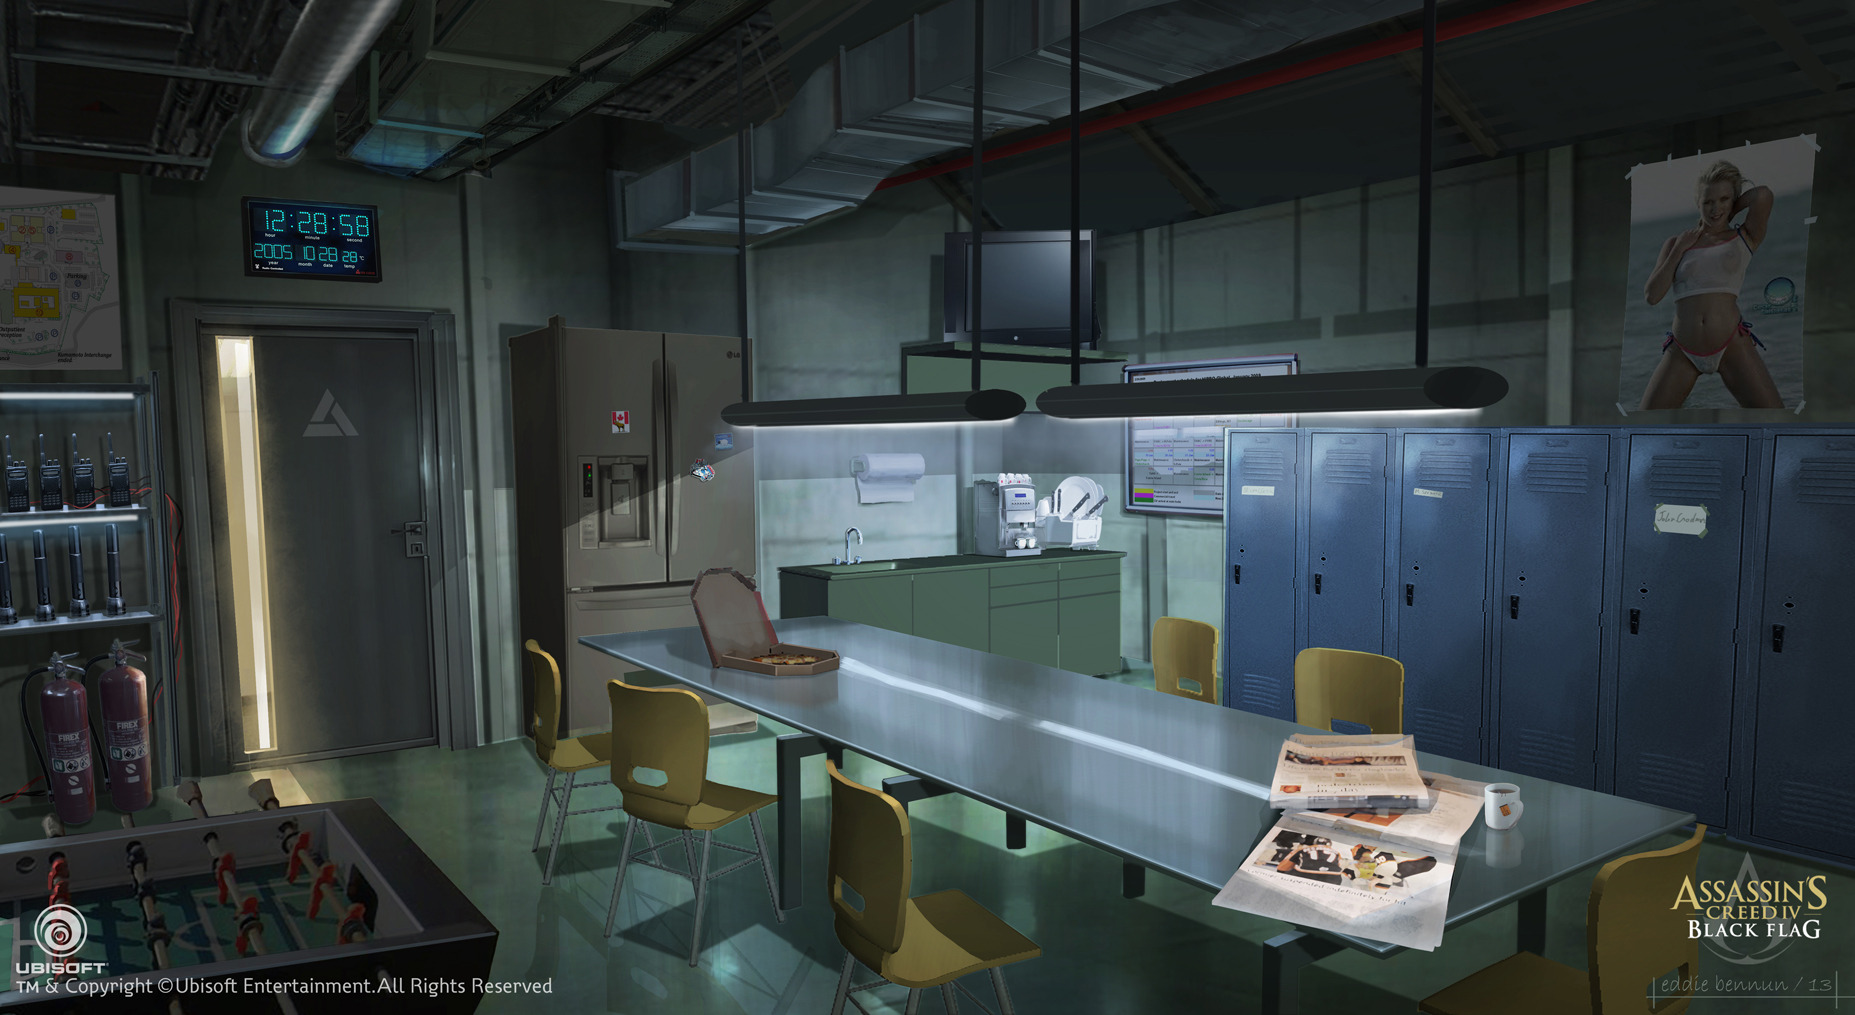 Assassins Creed Iv Black Flag Abstergo Entertainment Staff Room Concept Art By Ed Bennun Jpg